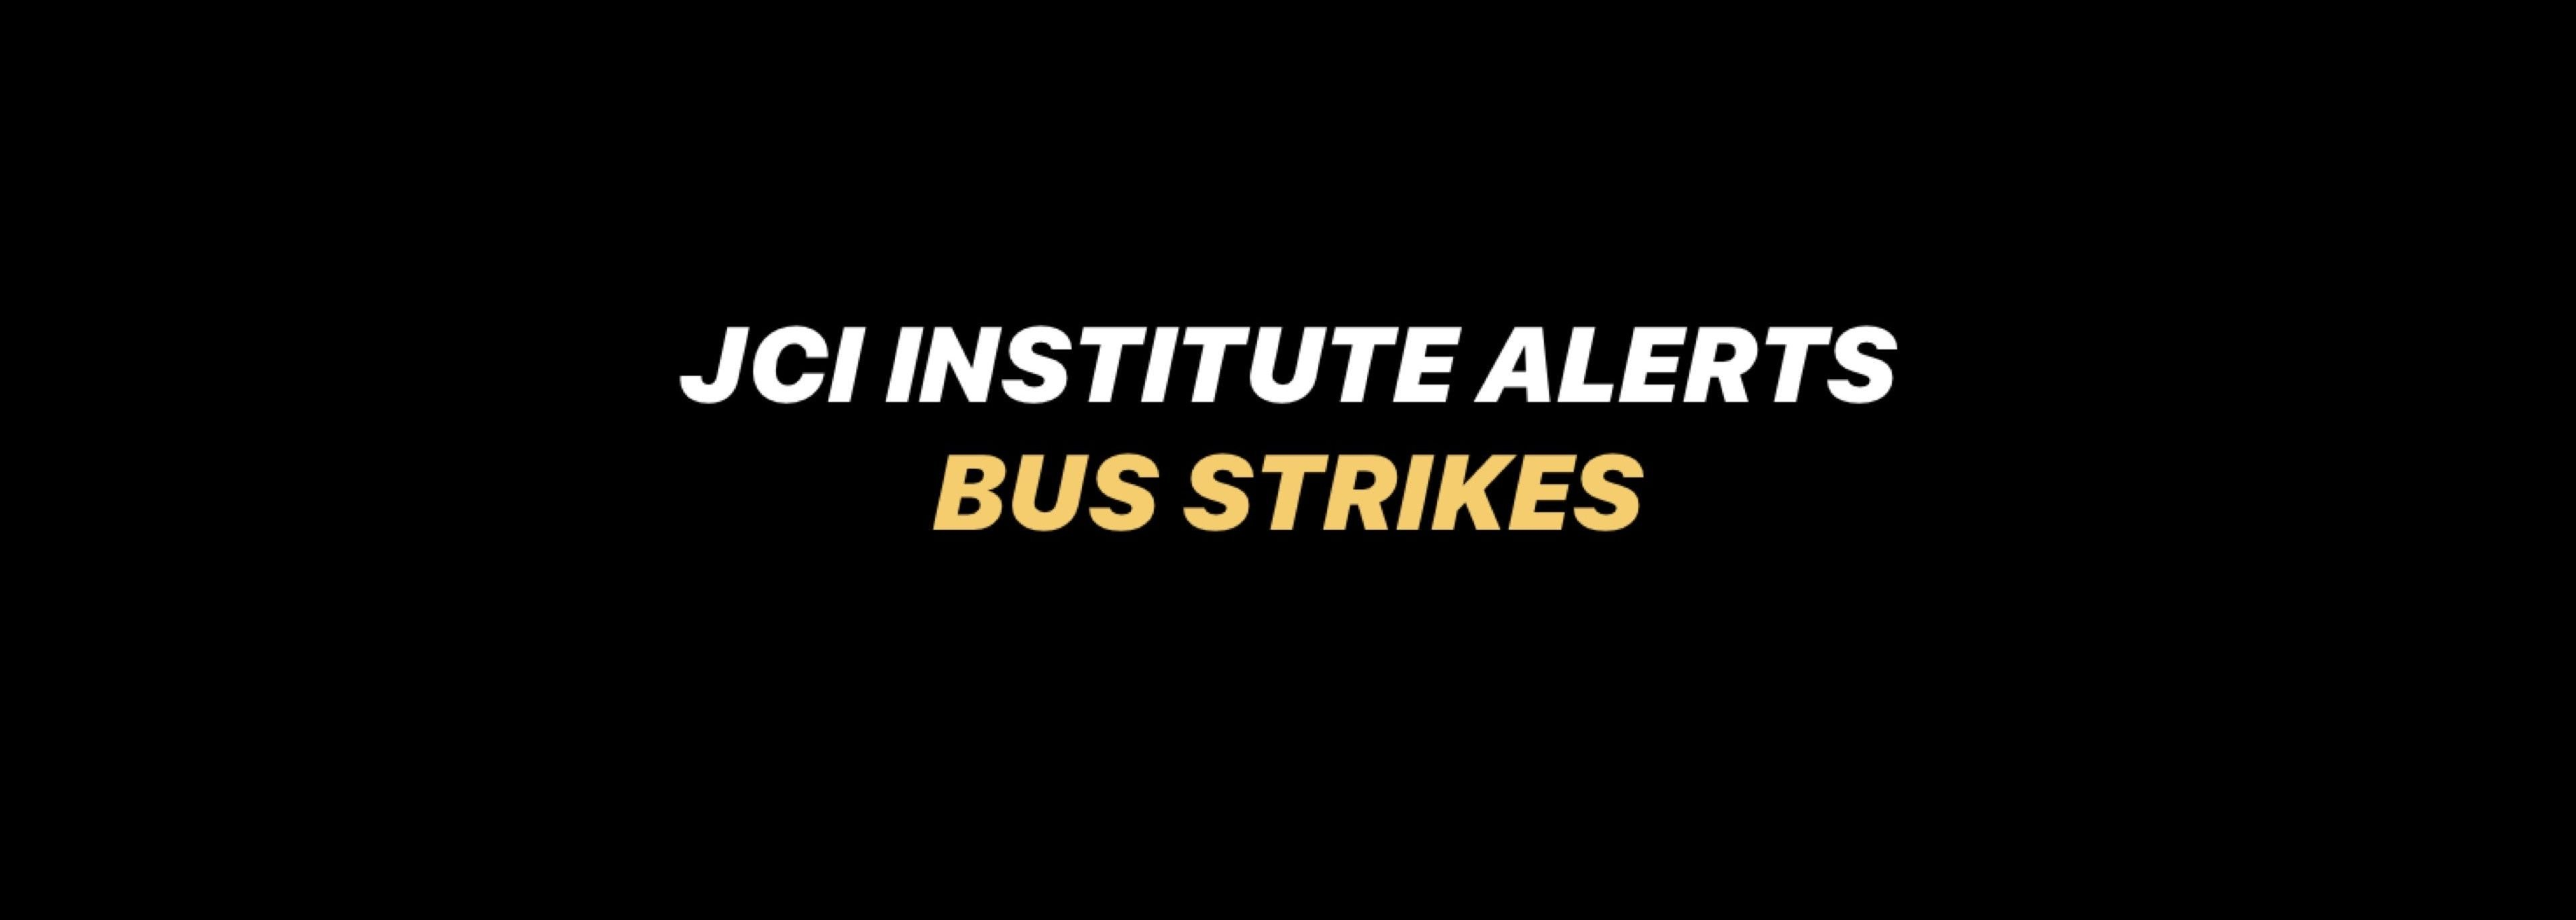 JCI ALERT BUS STRIKES